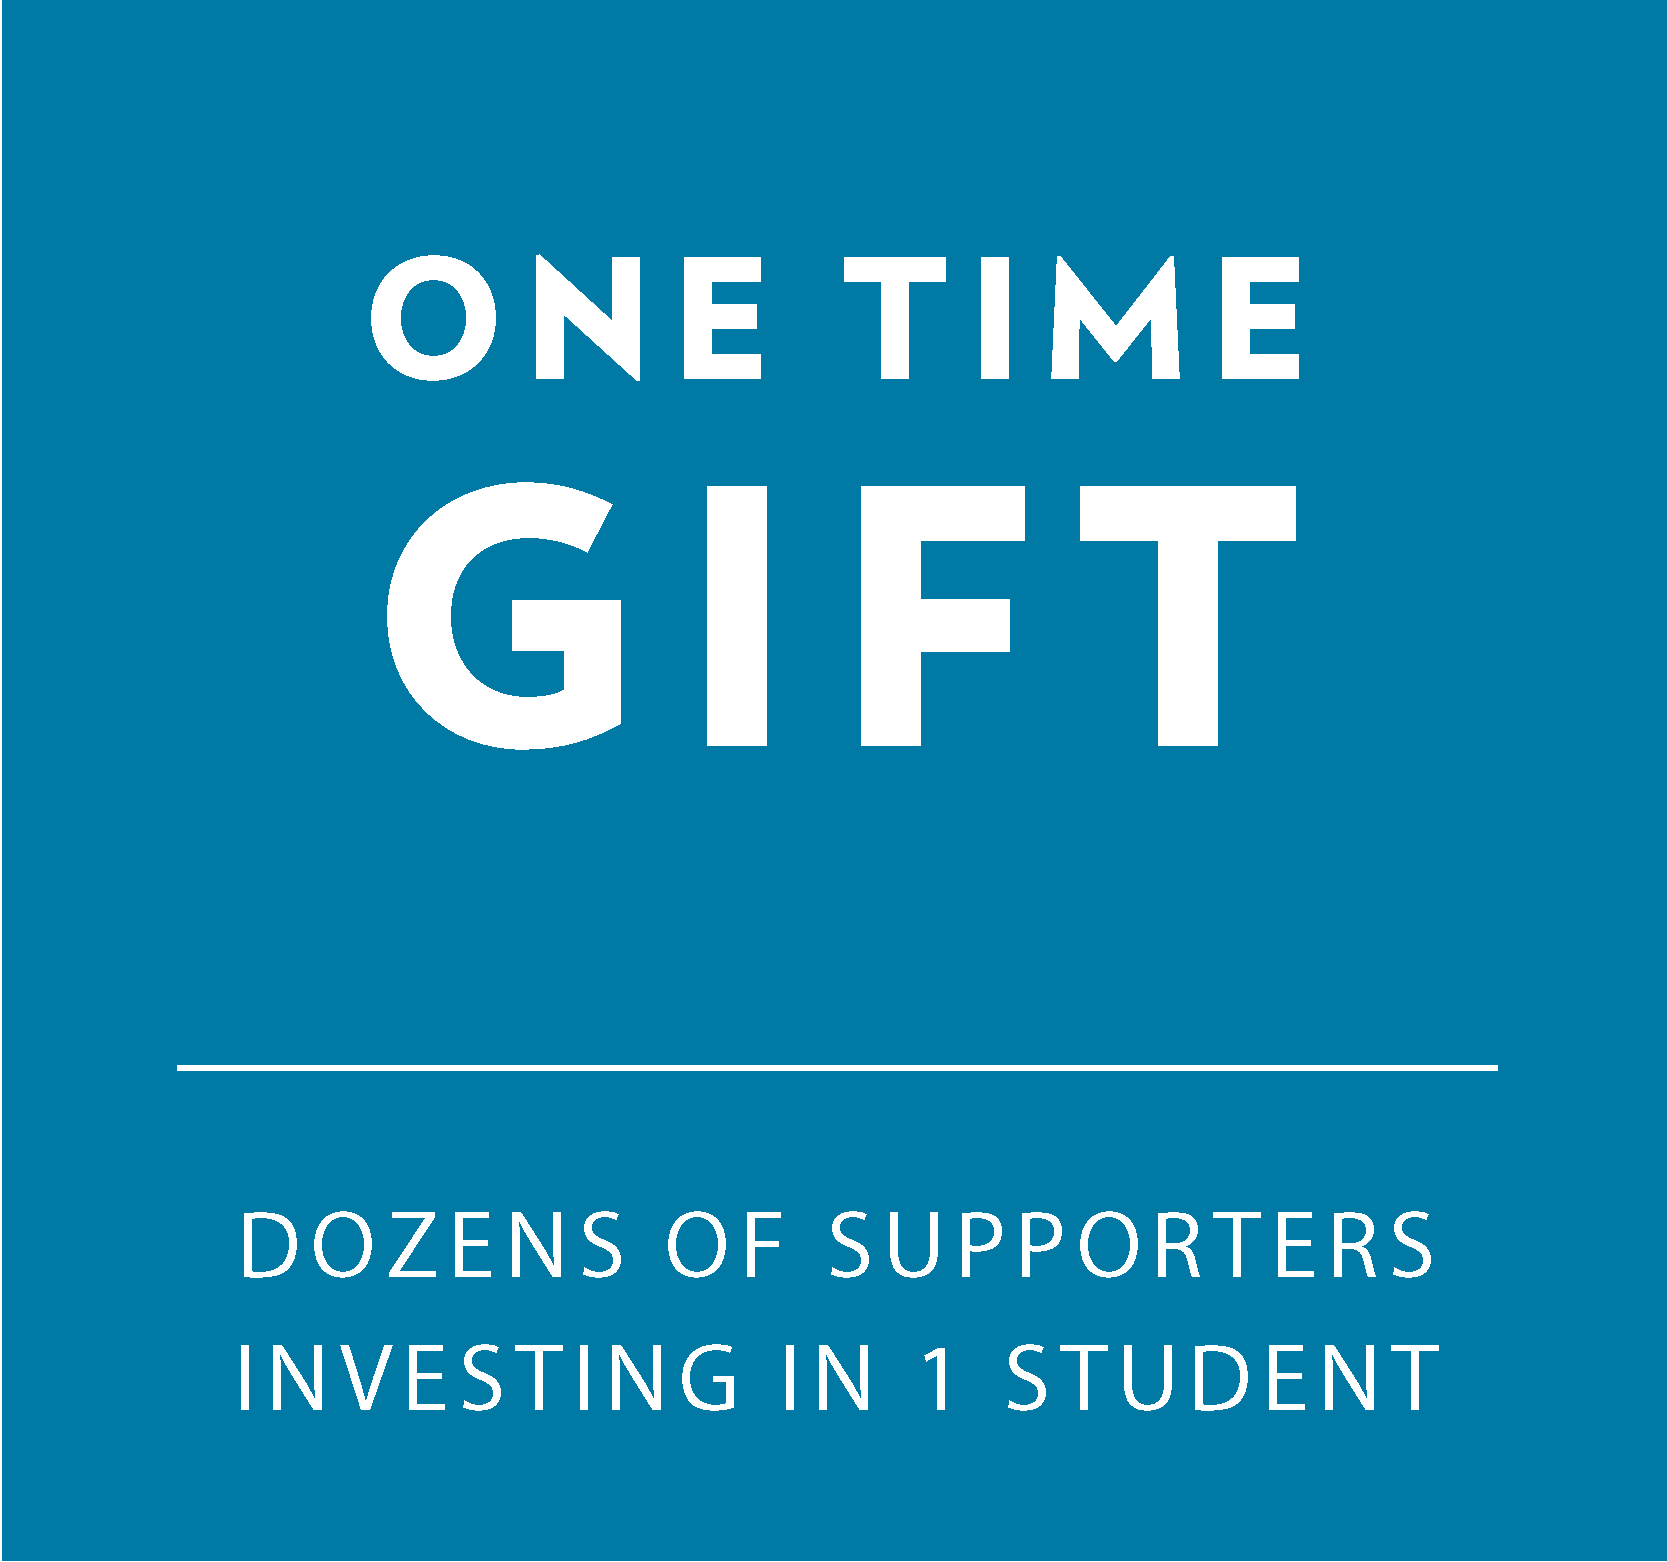 One time Gift: Dozens of Supporters Investing in 1 student